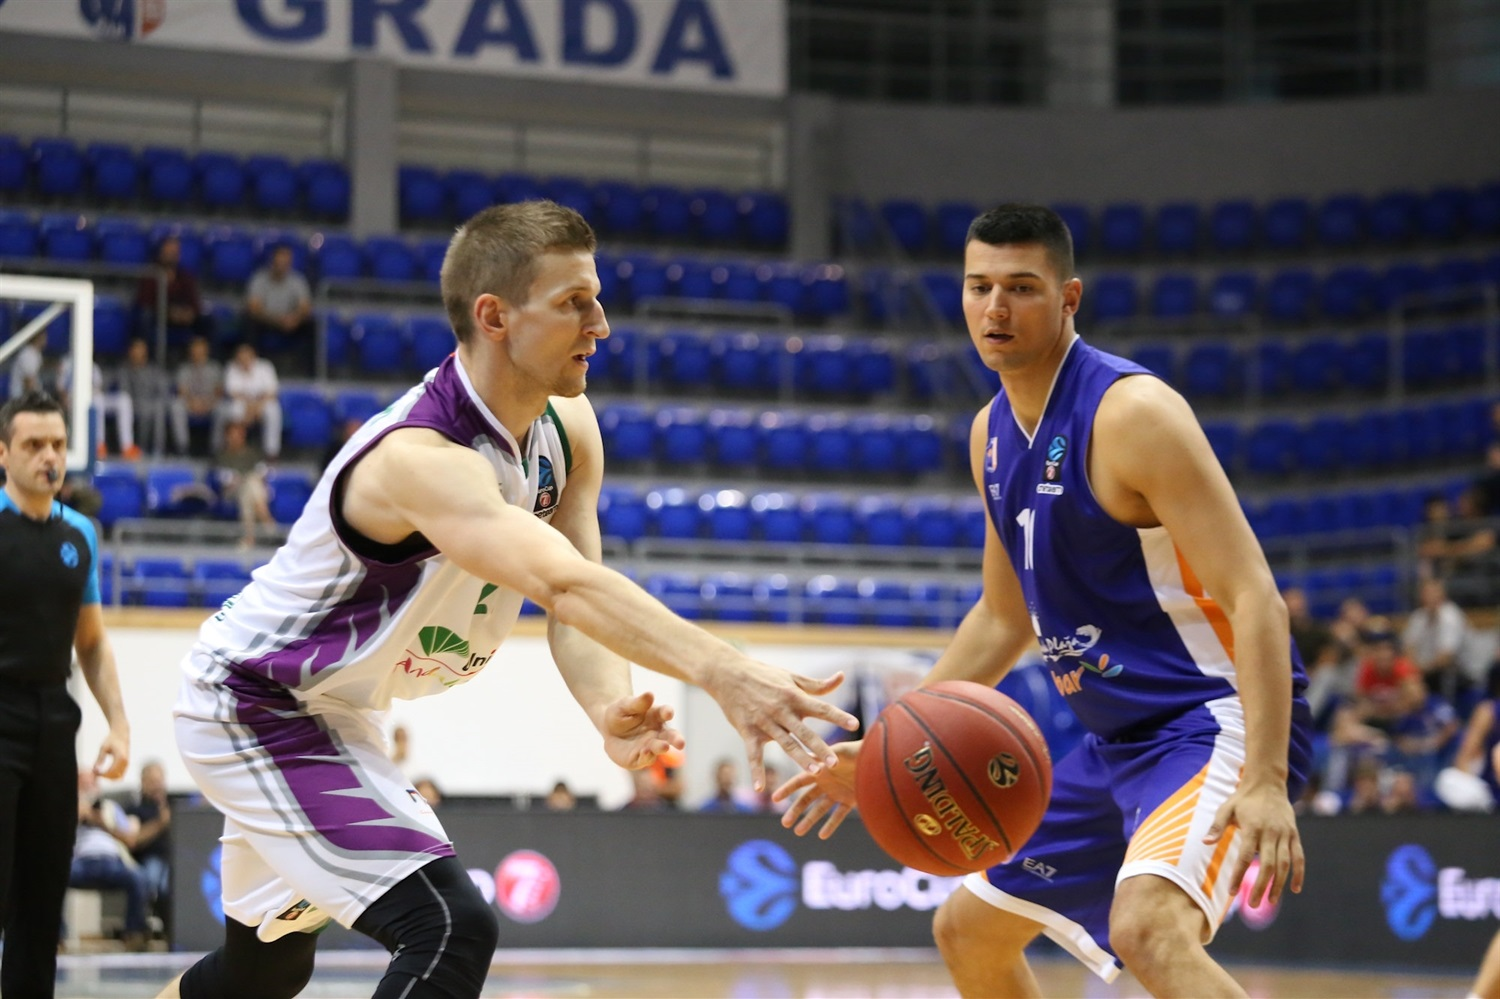 Adam Waczynski - Unicaja Malaga (photo Mornar) - EC18